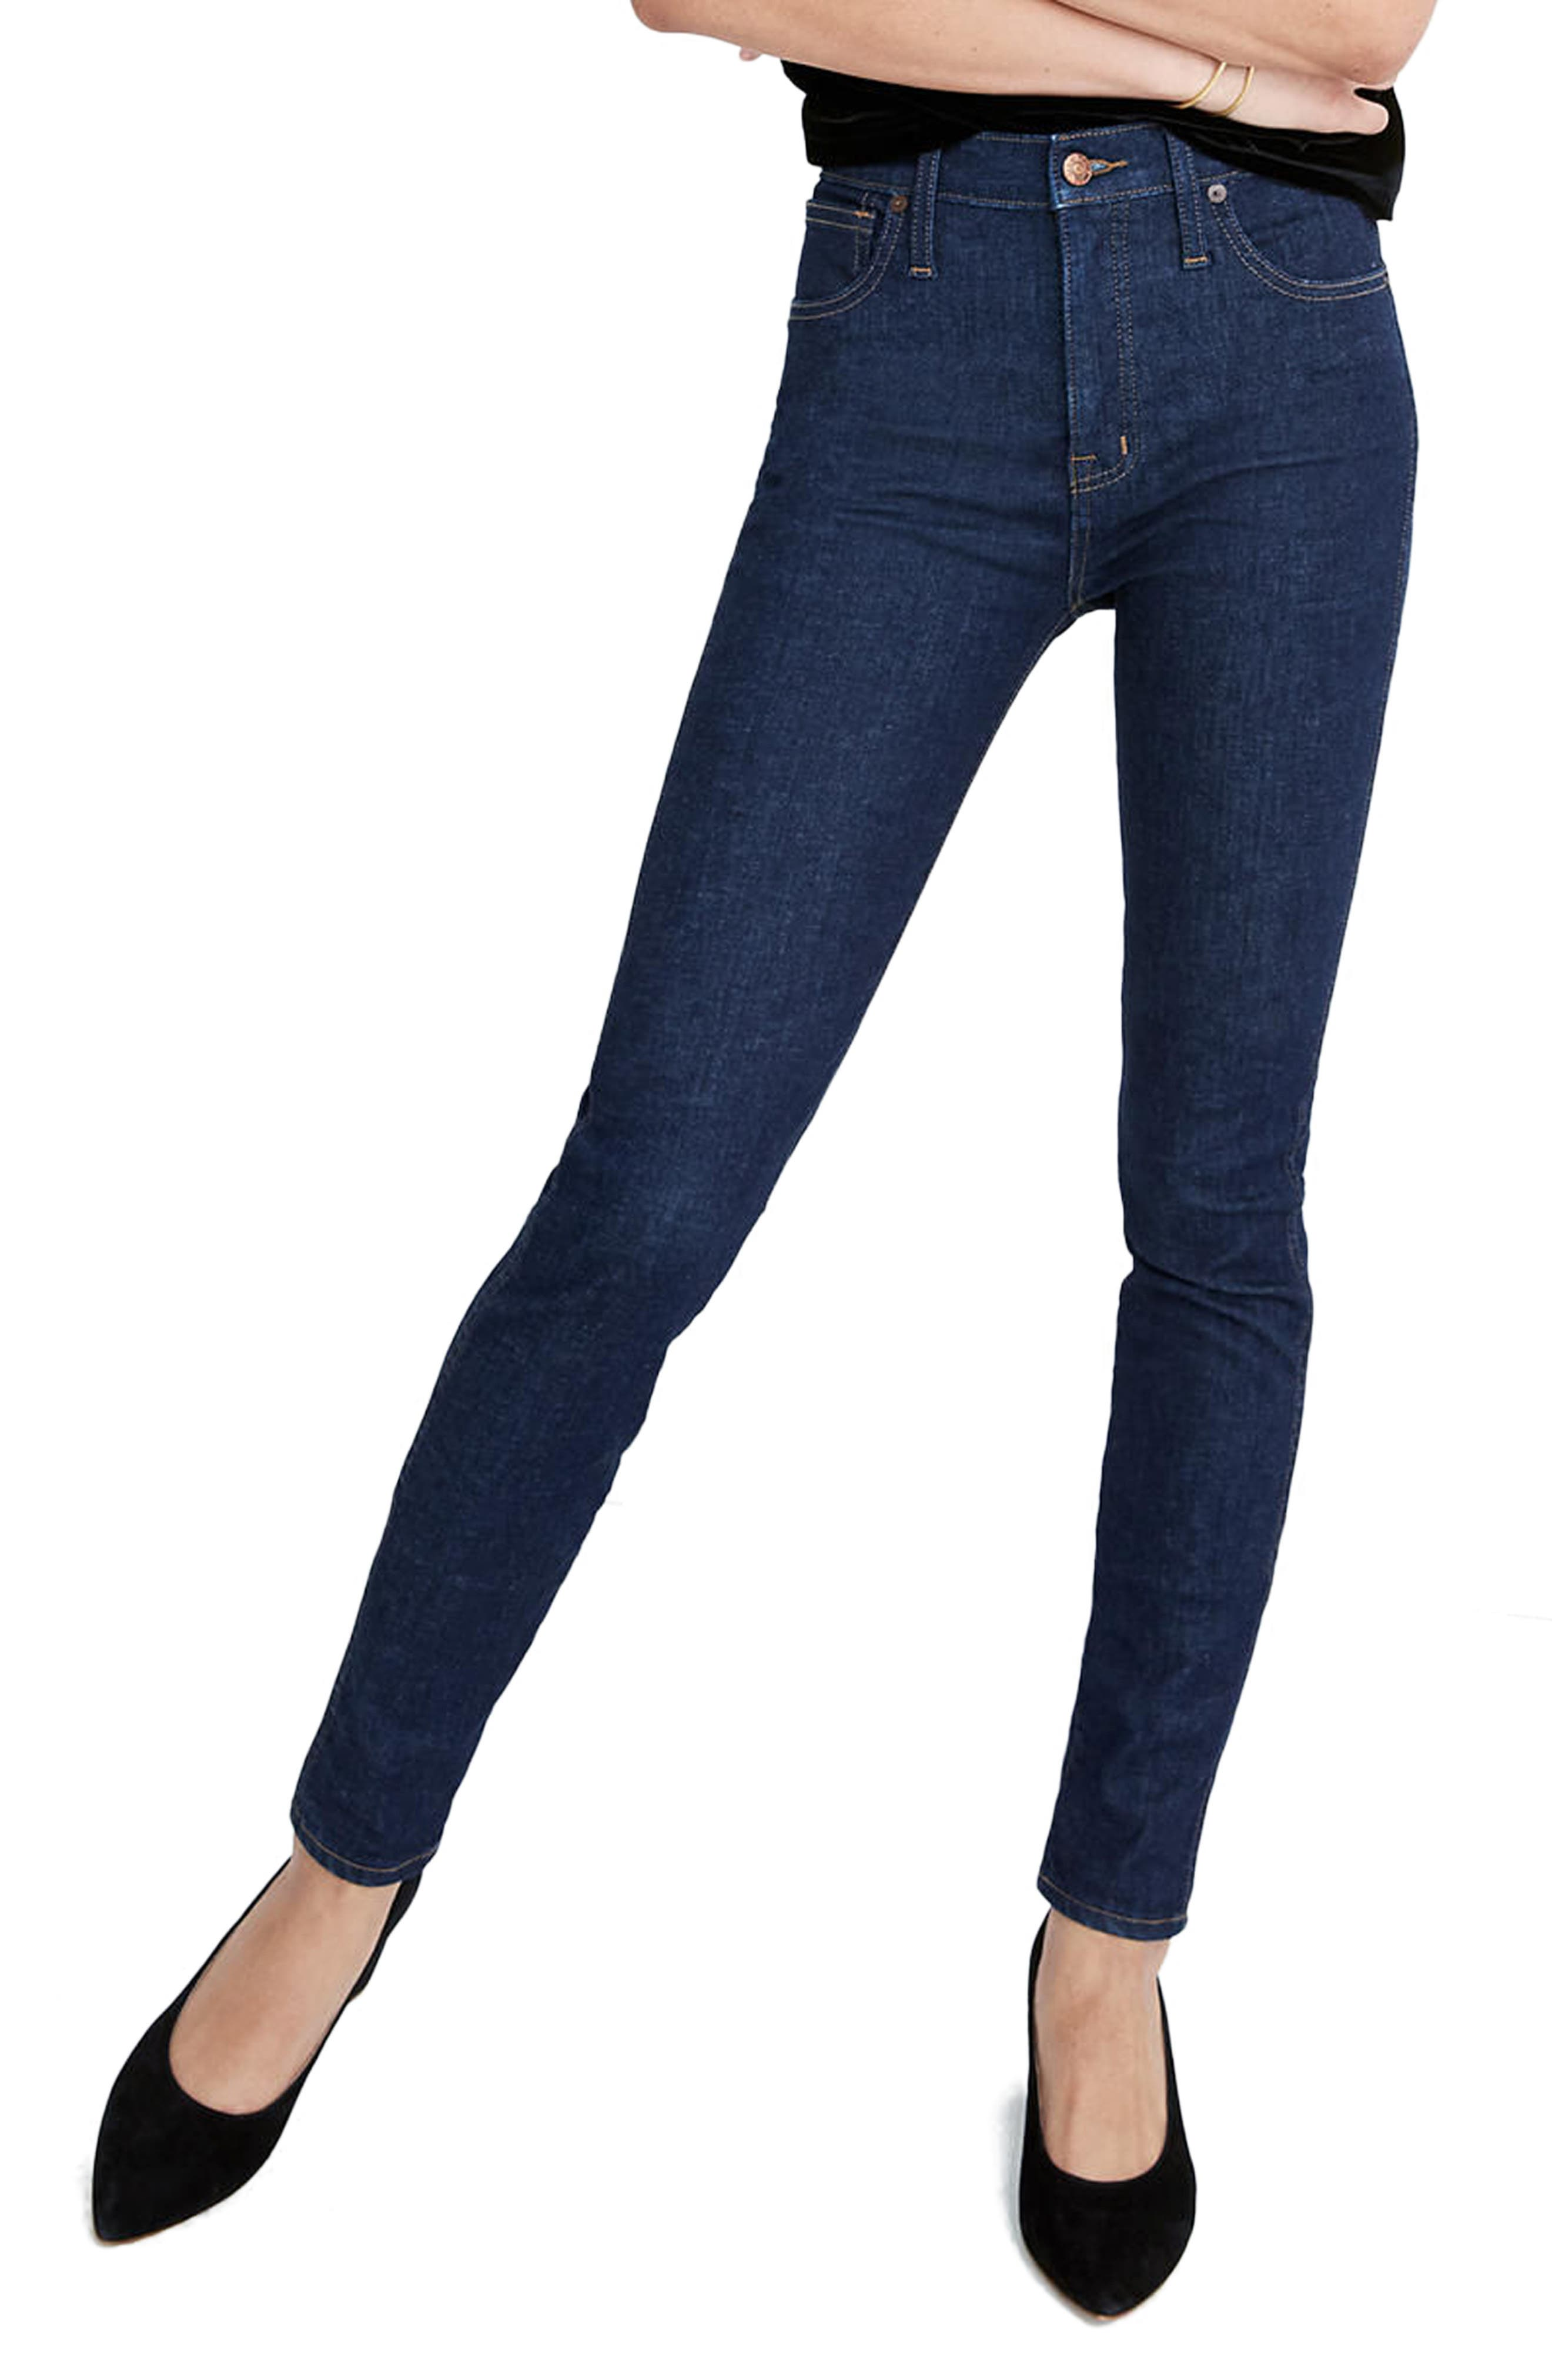 10-Inch High Waist Skinny Jeans,                         Main,                         color, LUCILLE